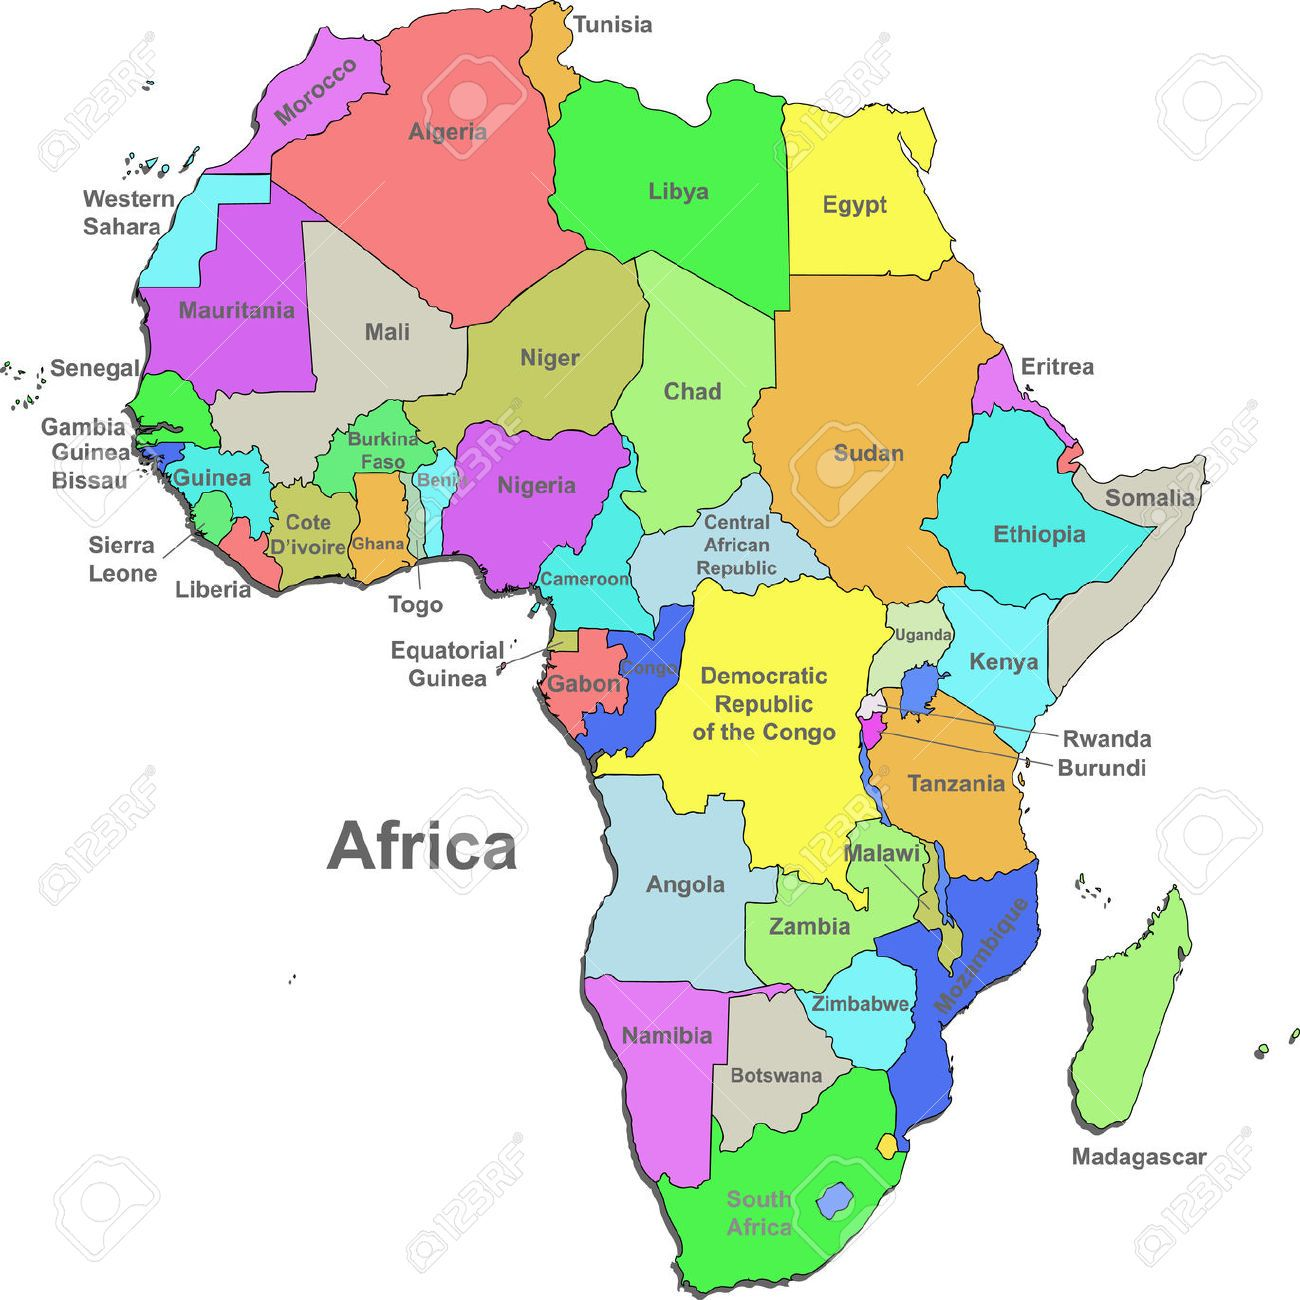 A current day map of Africa | Social stus Africa Unit ... on african industries map, yemen map, north america, south america, nigeria map, african borders map, canada map, african world map, france map, african landforms map, african people map, egypt map, european map, african provinces map, african governments map, new zealand map, australia map, middle eastern map, african flags map, middle east, united states of america, europe map, sahara desert map, cambodia map,